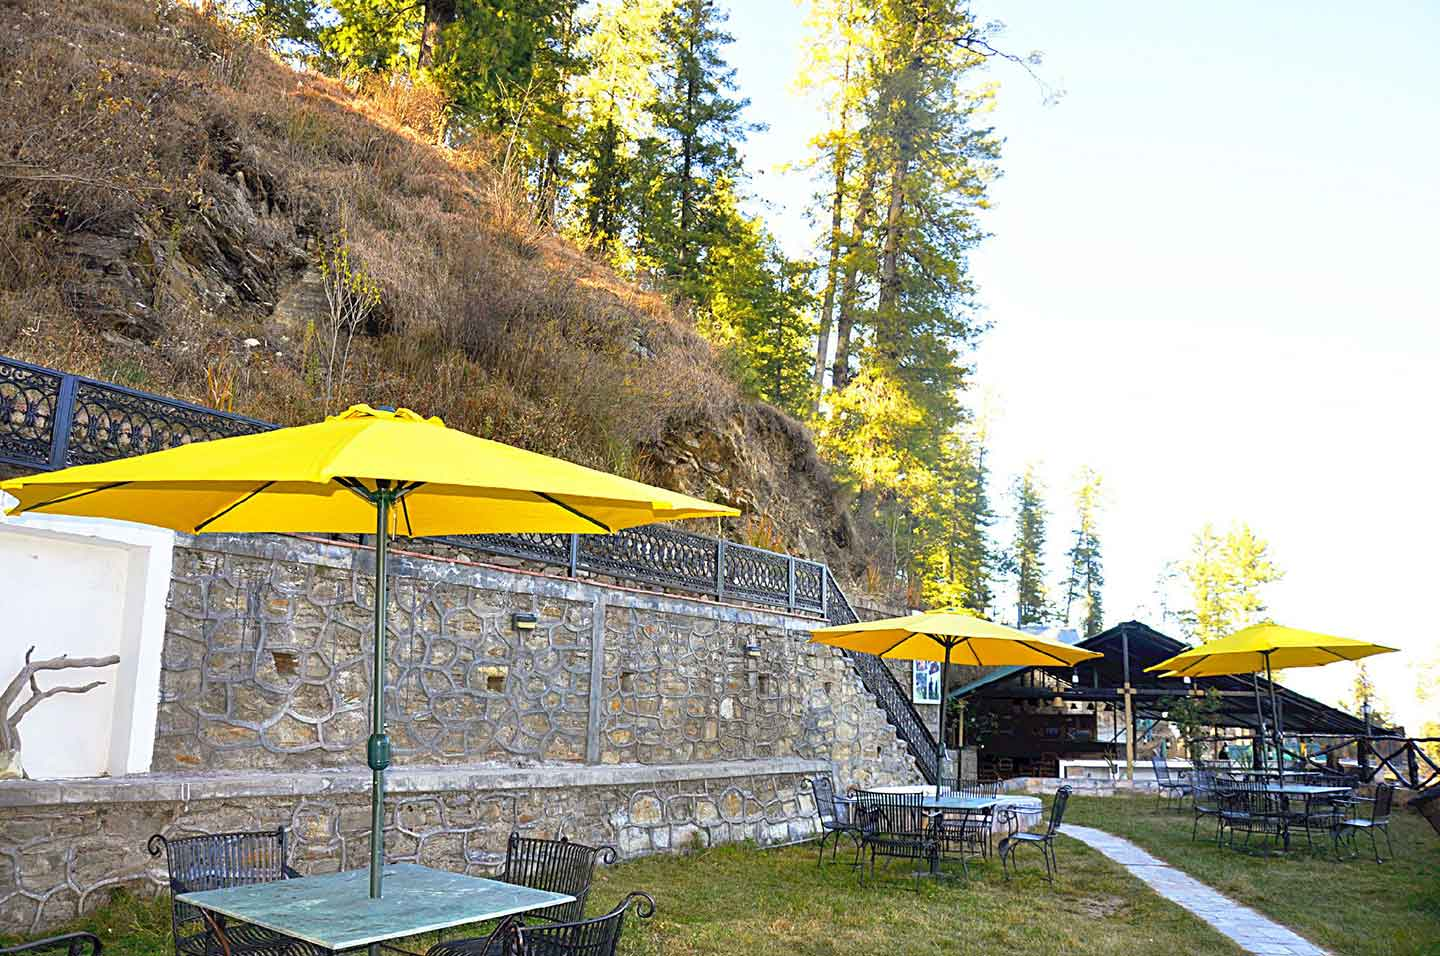 Amod Tethys Sky Resort And Spa Narkanda Tethys Ski Resort Narkanda Hotels Resorts In Narkanda Shimla